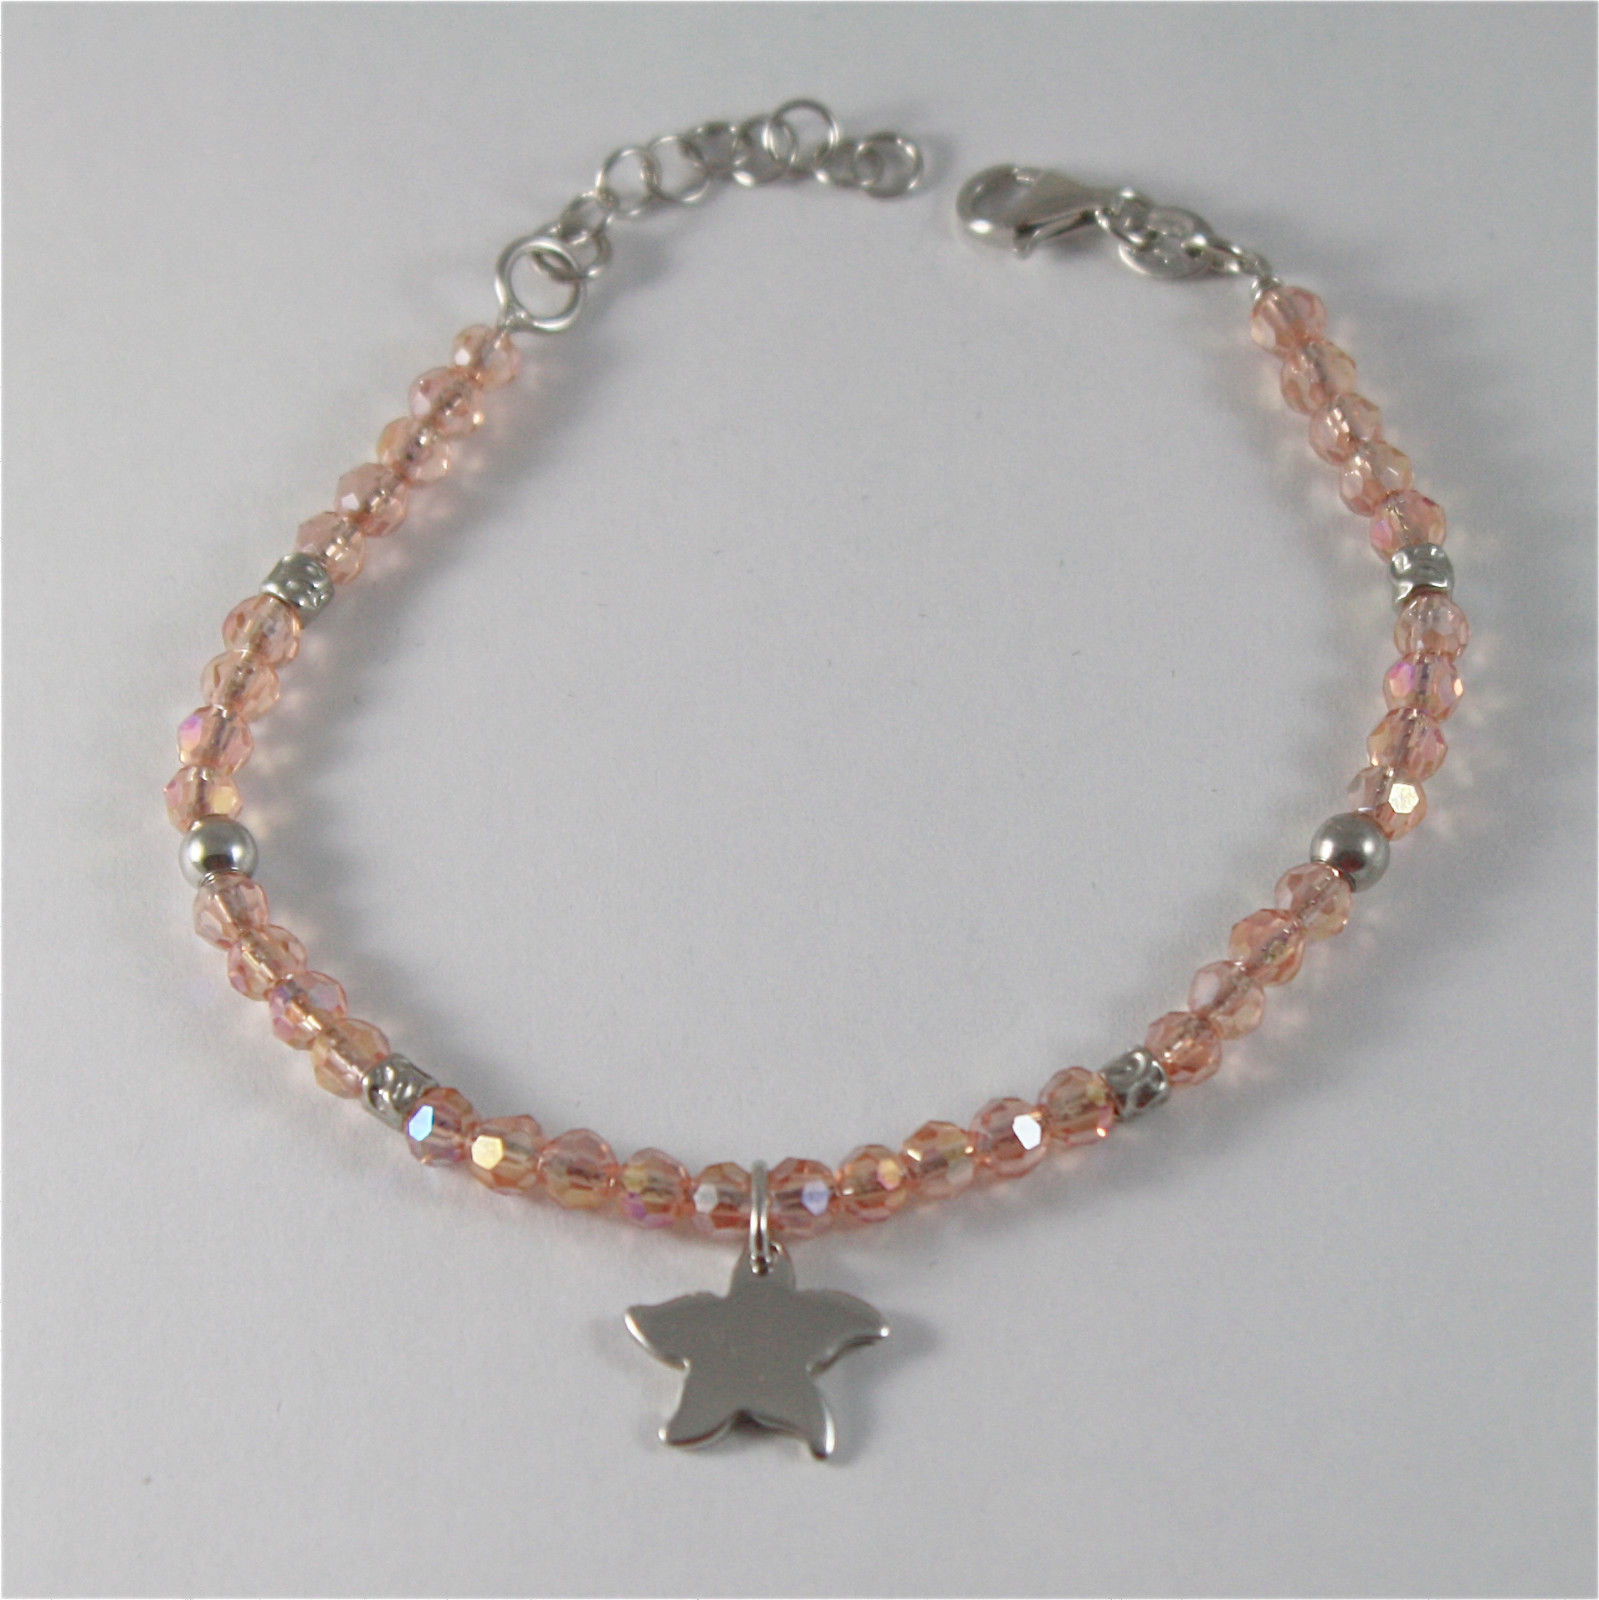 925 SILVER BRACELET WITH STARFISH AND MULTIFACETED BALLS MADE IN ITALY 59,00 USD